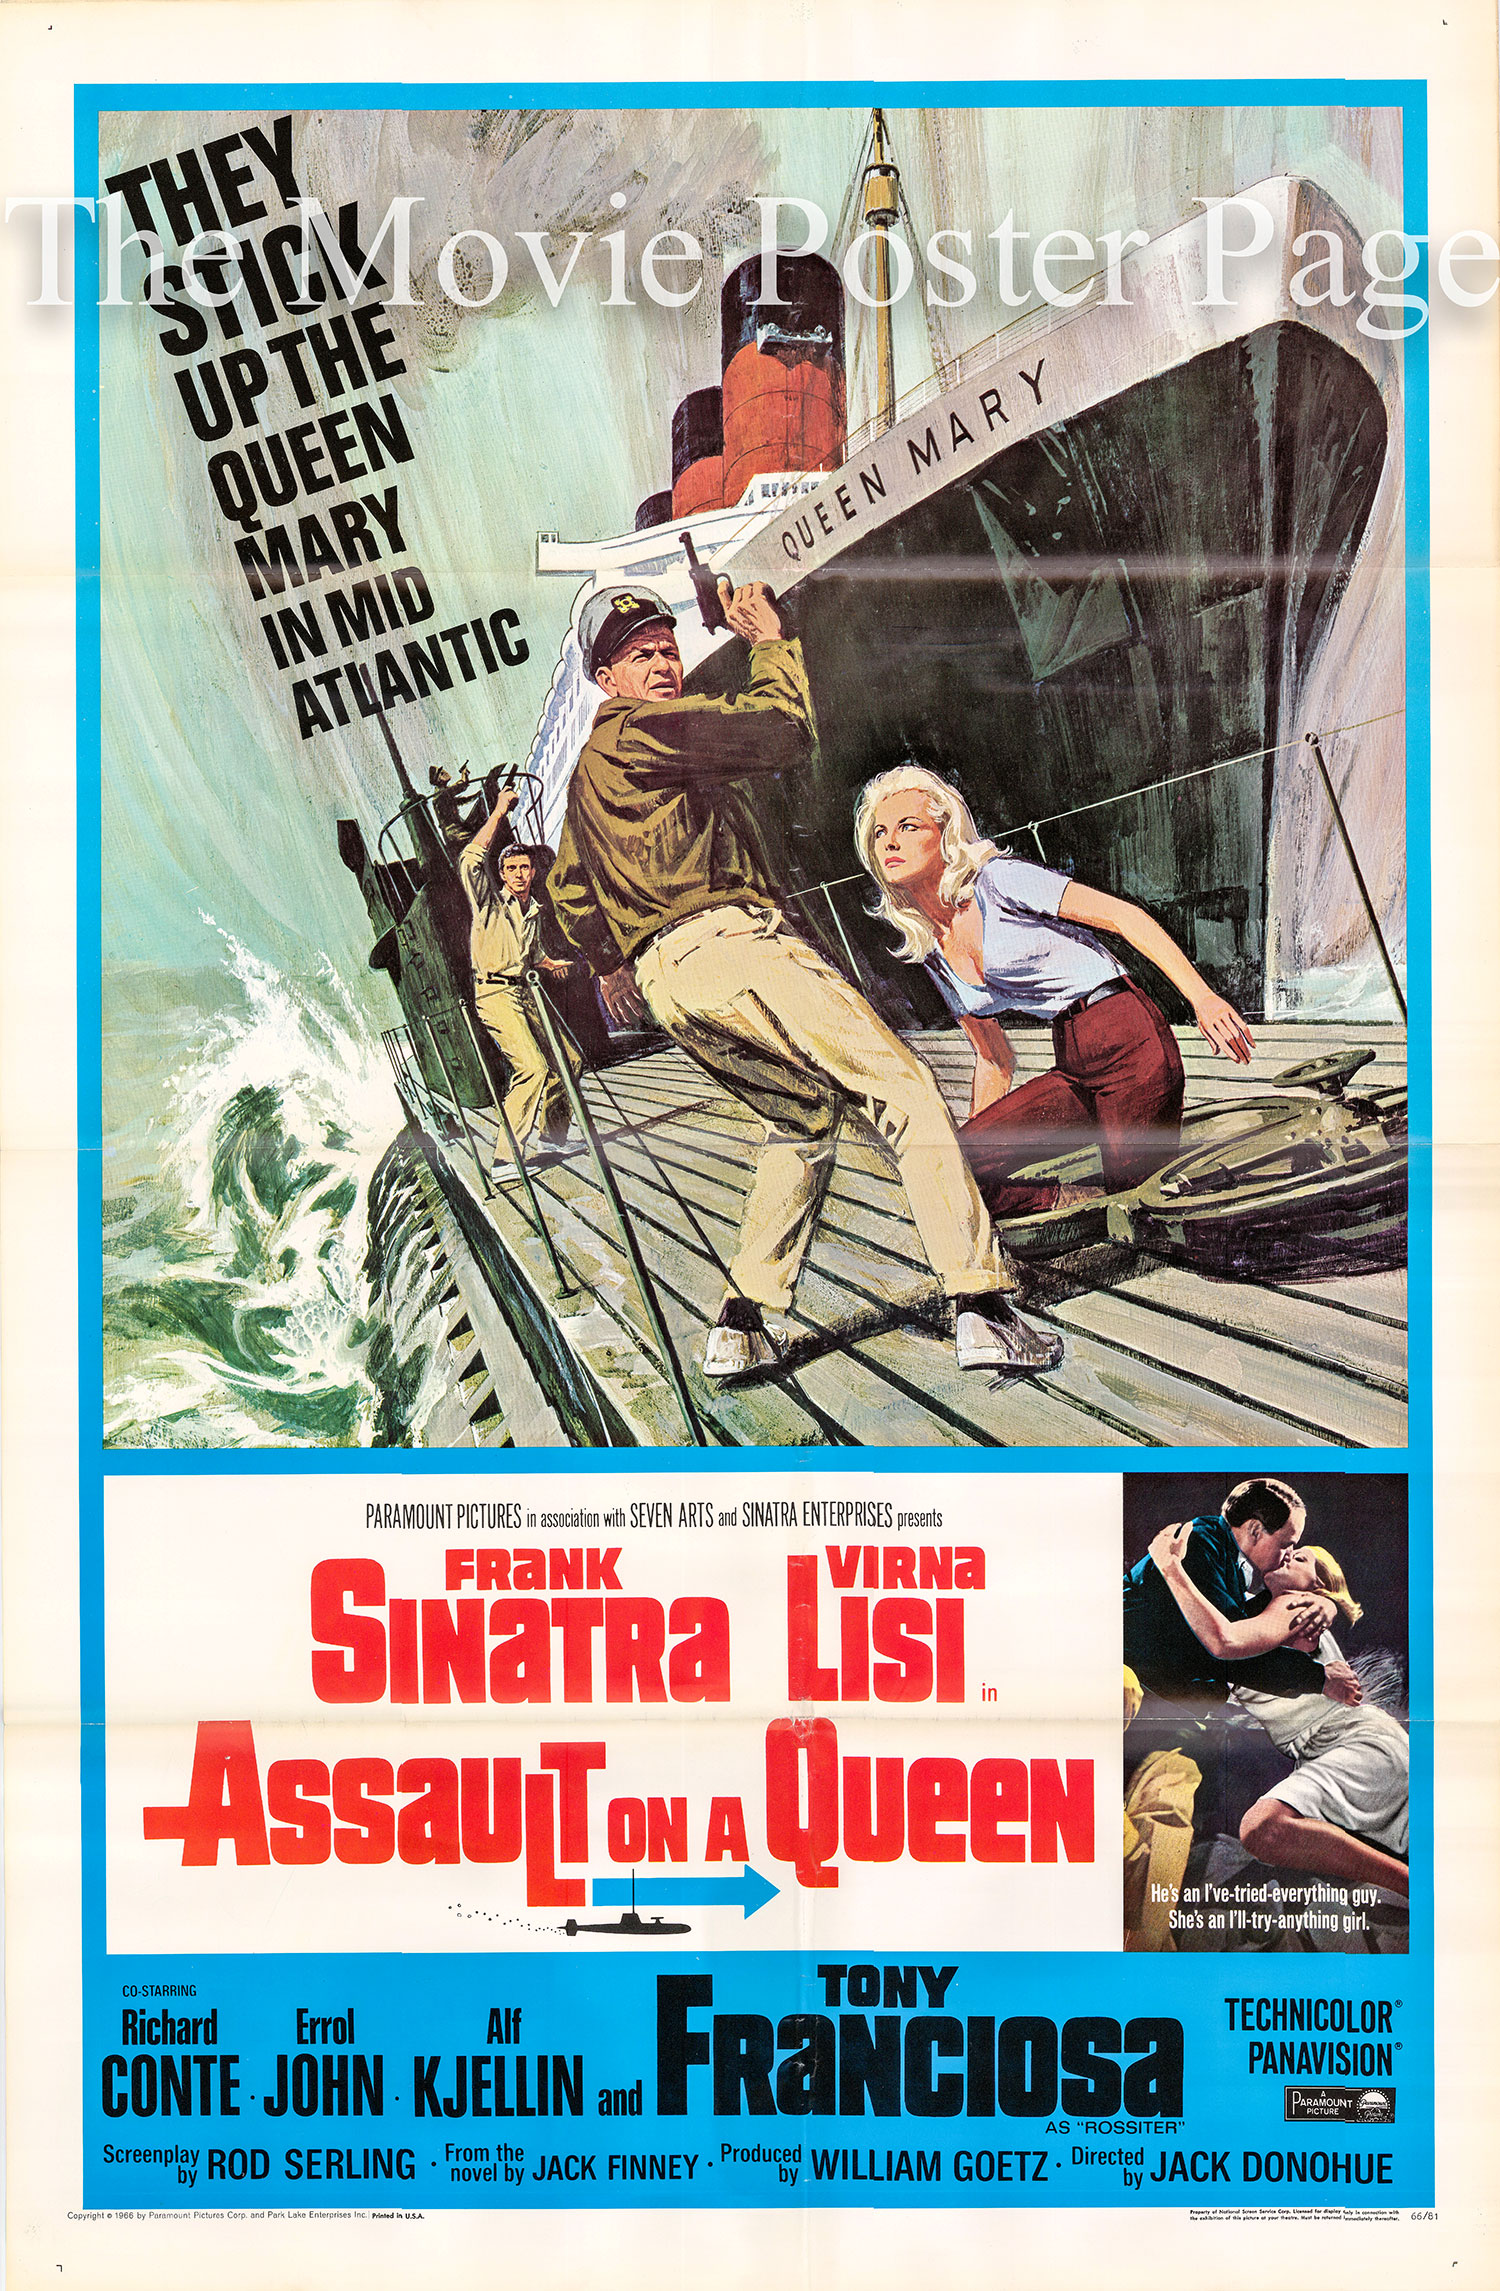 Pictured is a US one-sheet poster for the 1966 Jack Donohue film Assault on a Queen starring Frank Sinatra.